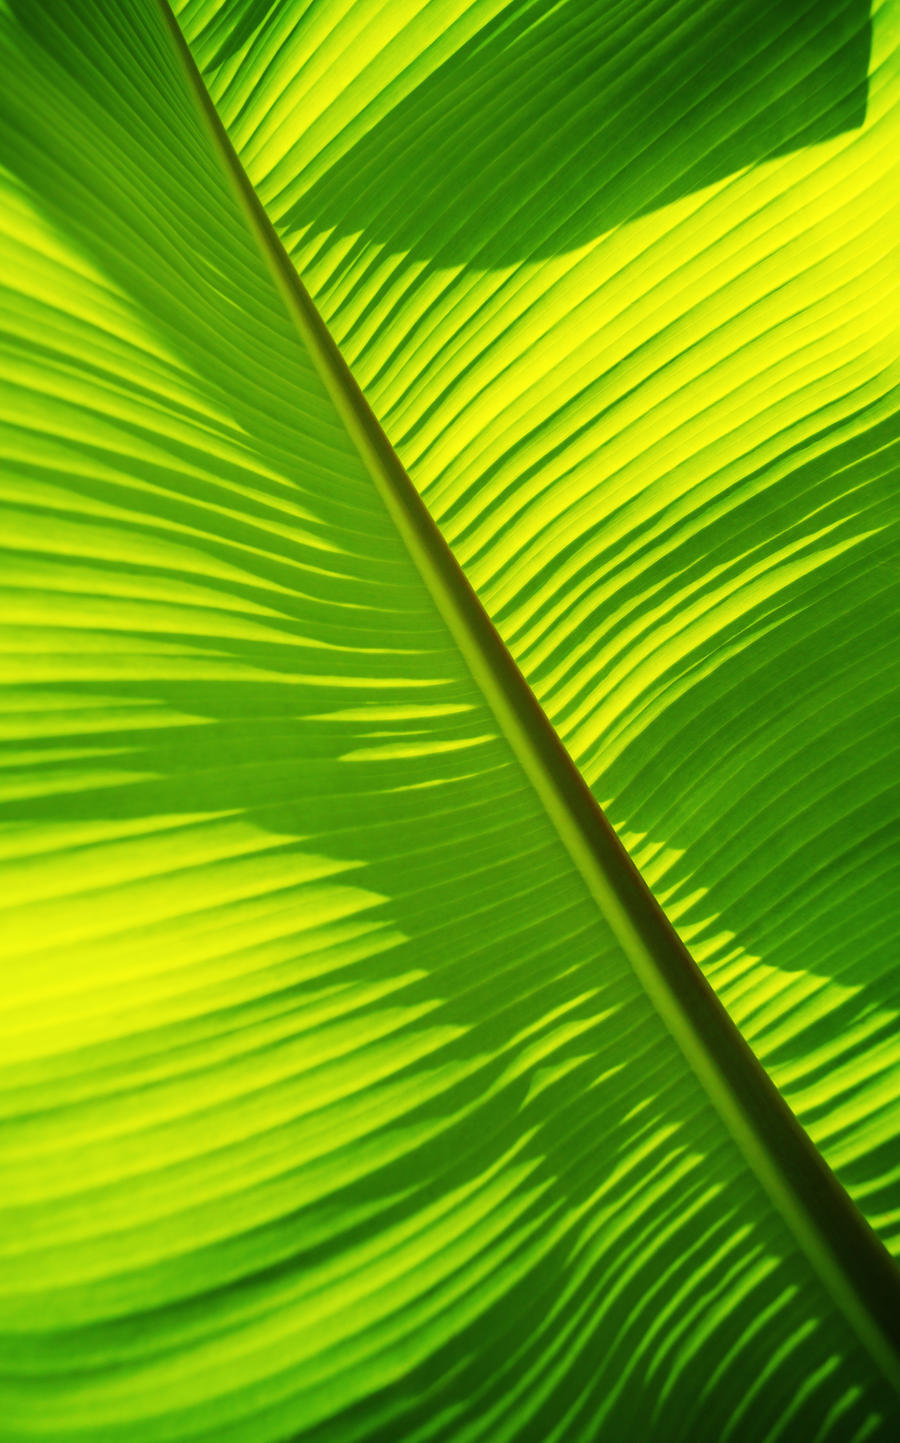 Close Up Of Bright Green Banana Leaf Pattern Forms Off